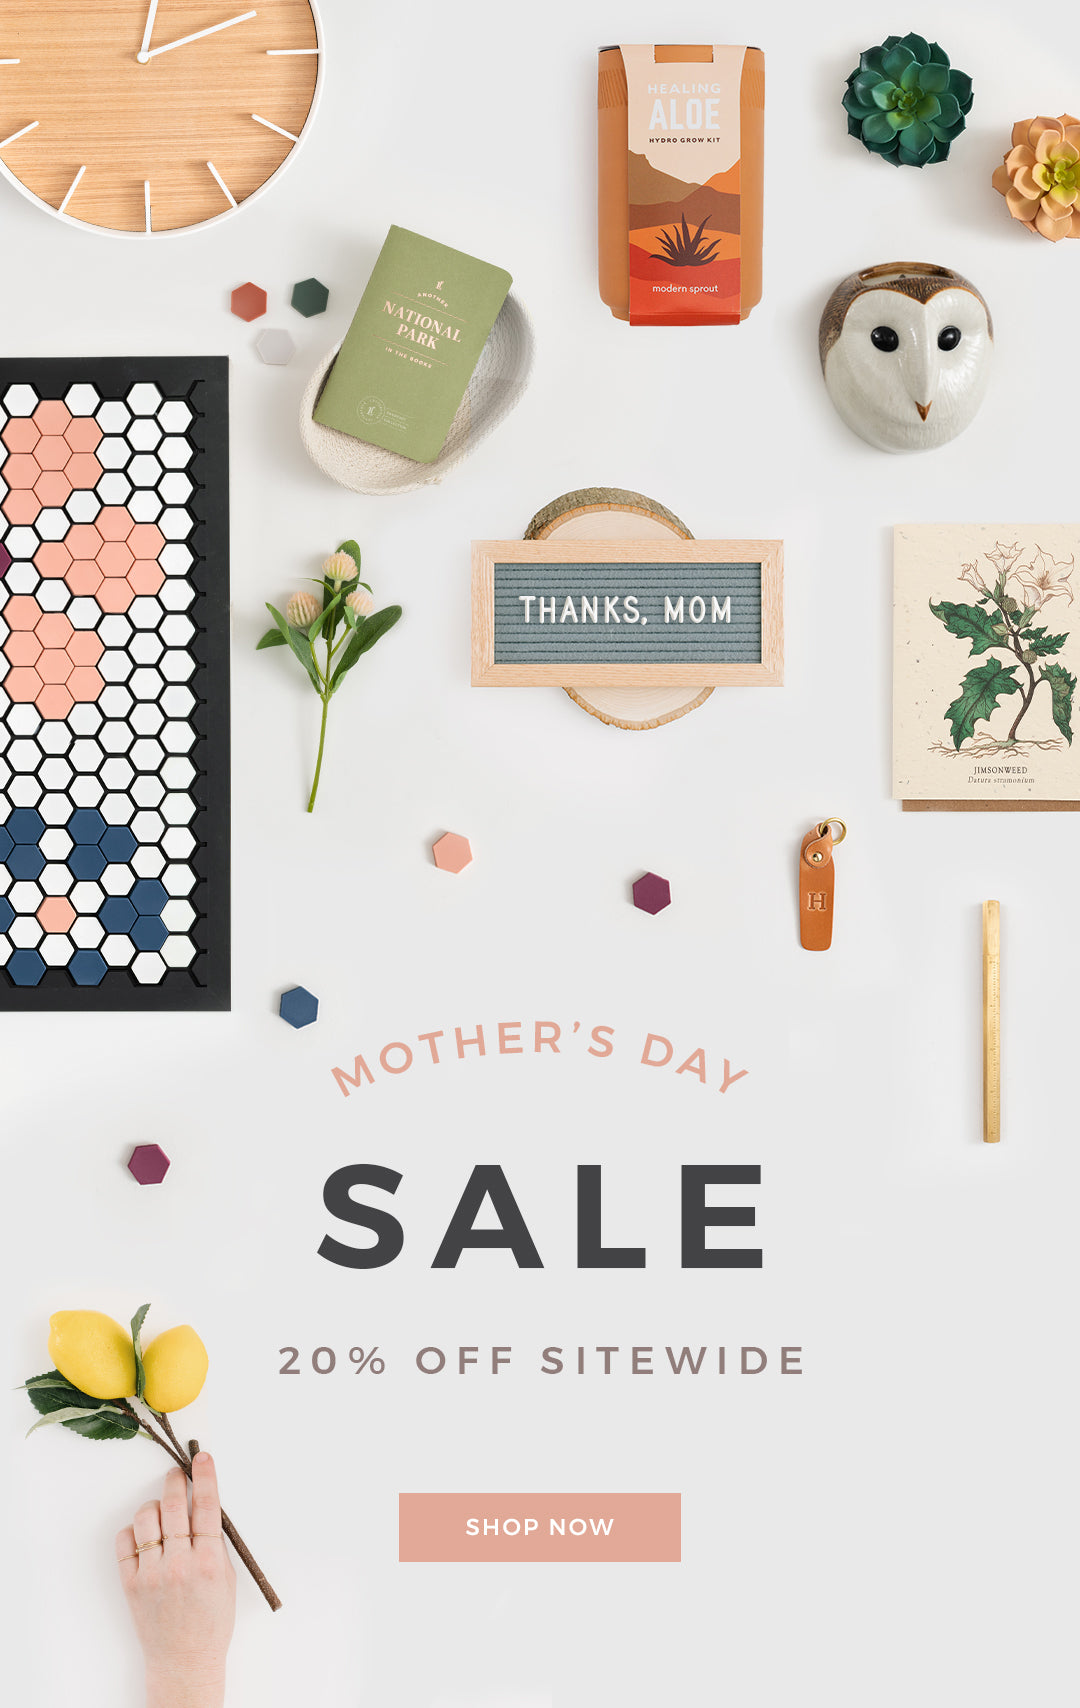 Mother's Day Sale - 20% off Sitewide